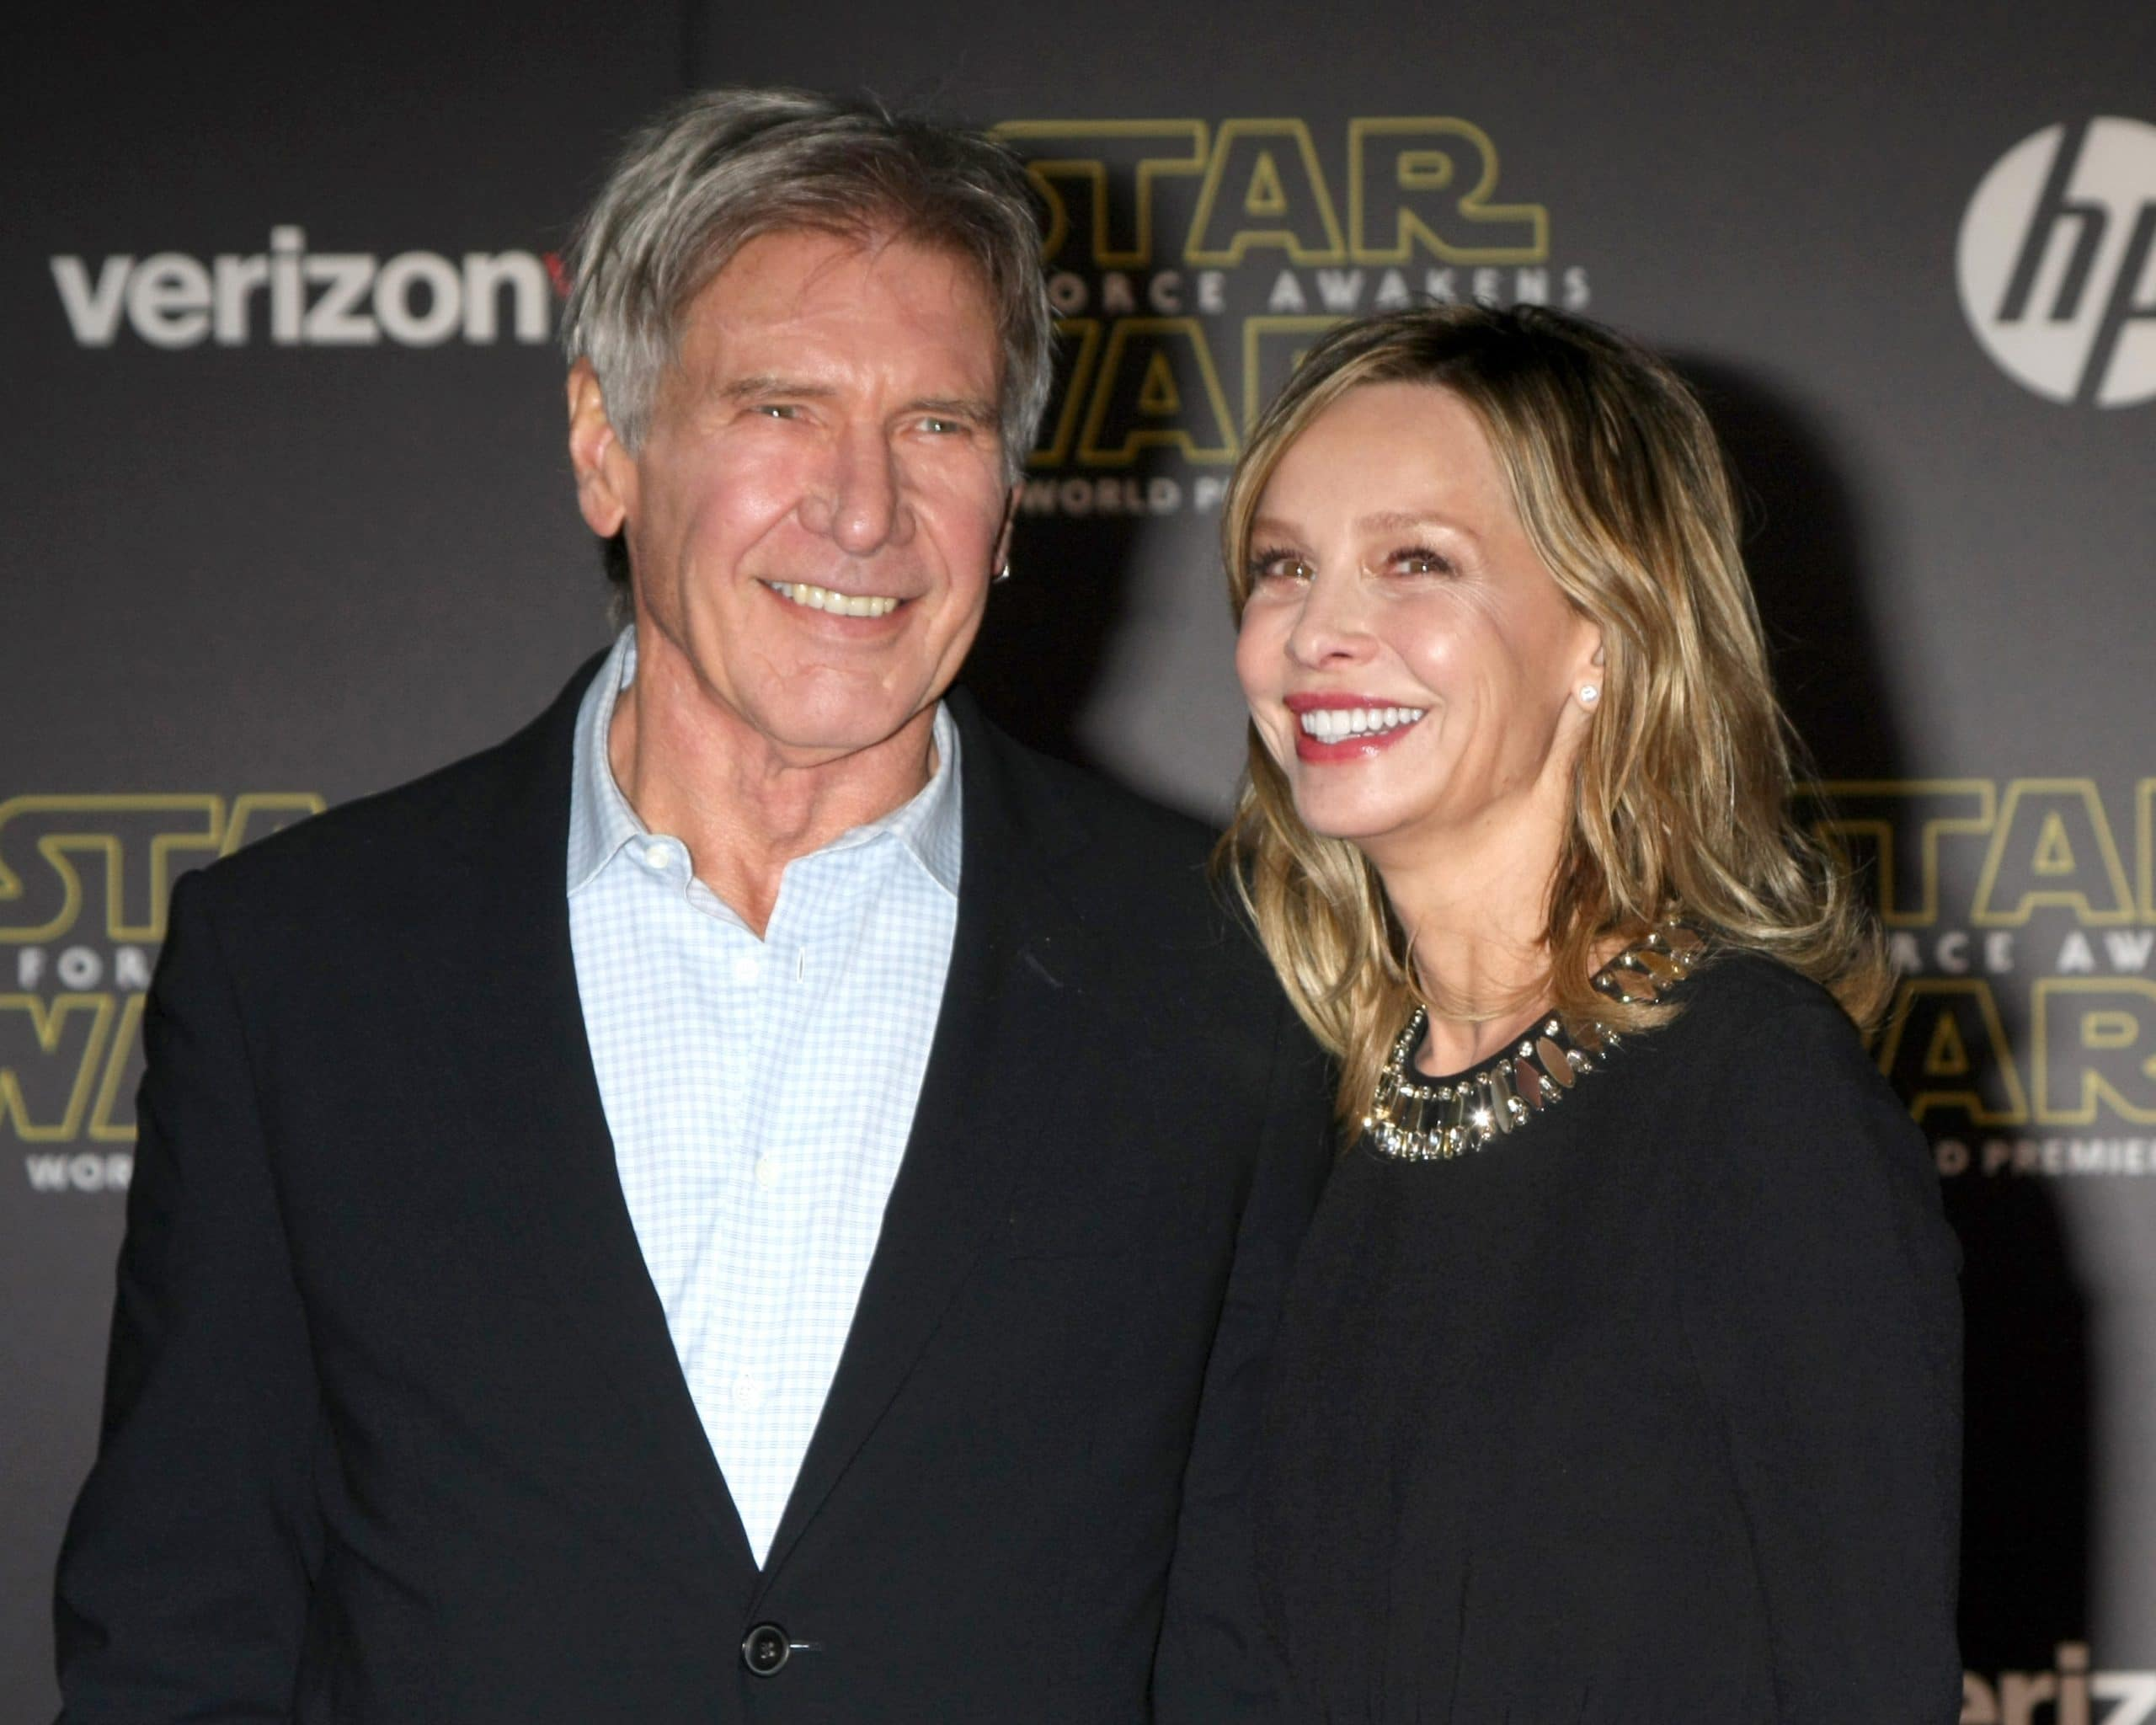 Harrison Ford, Calista Flockhart at the Star Wars: The Force Awakens World Premiere